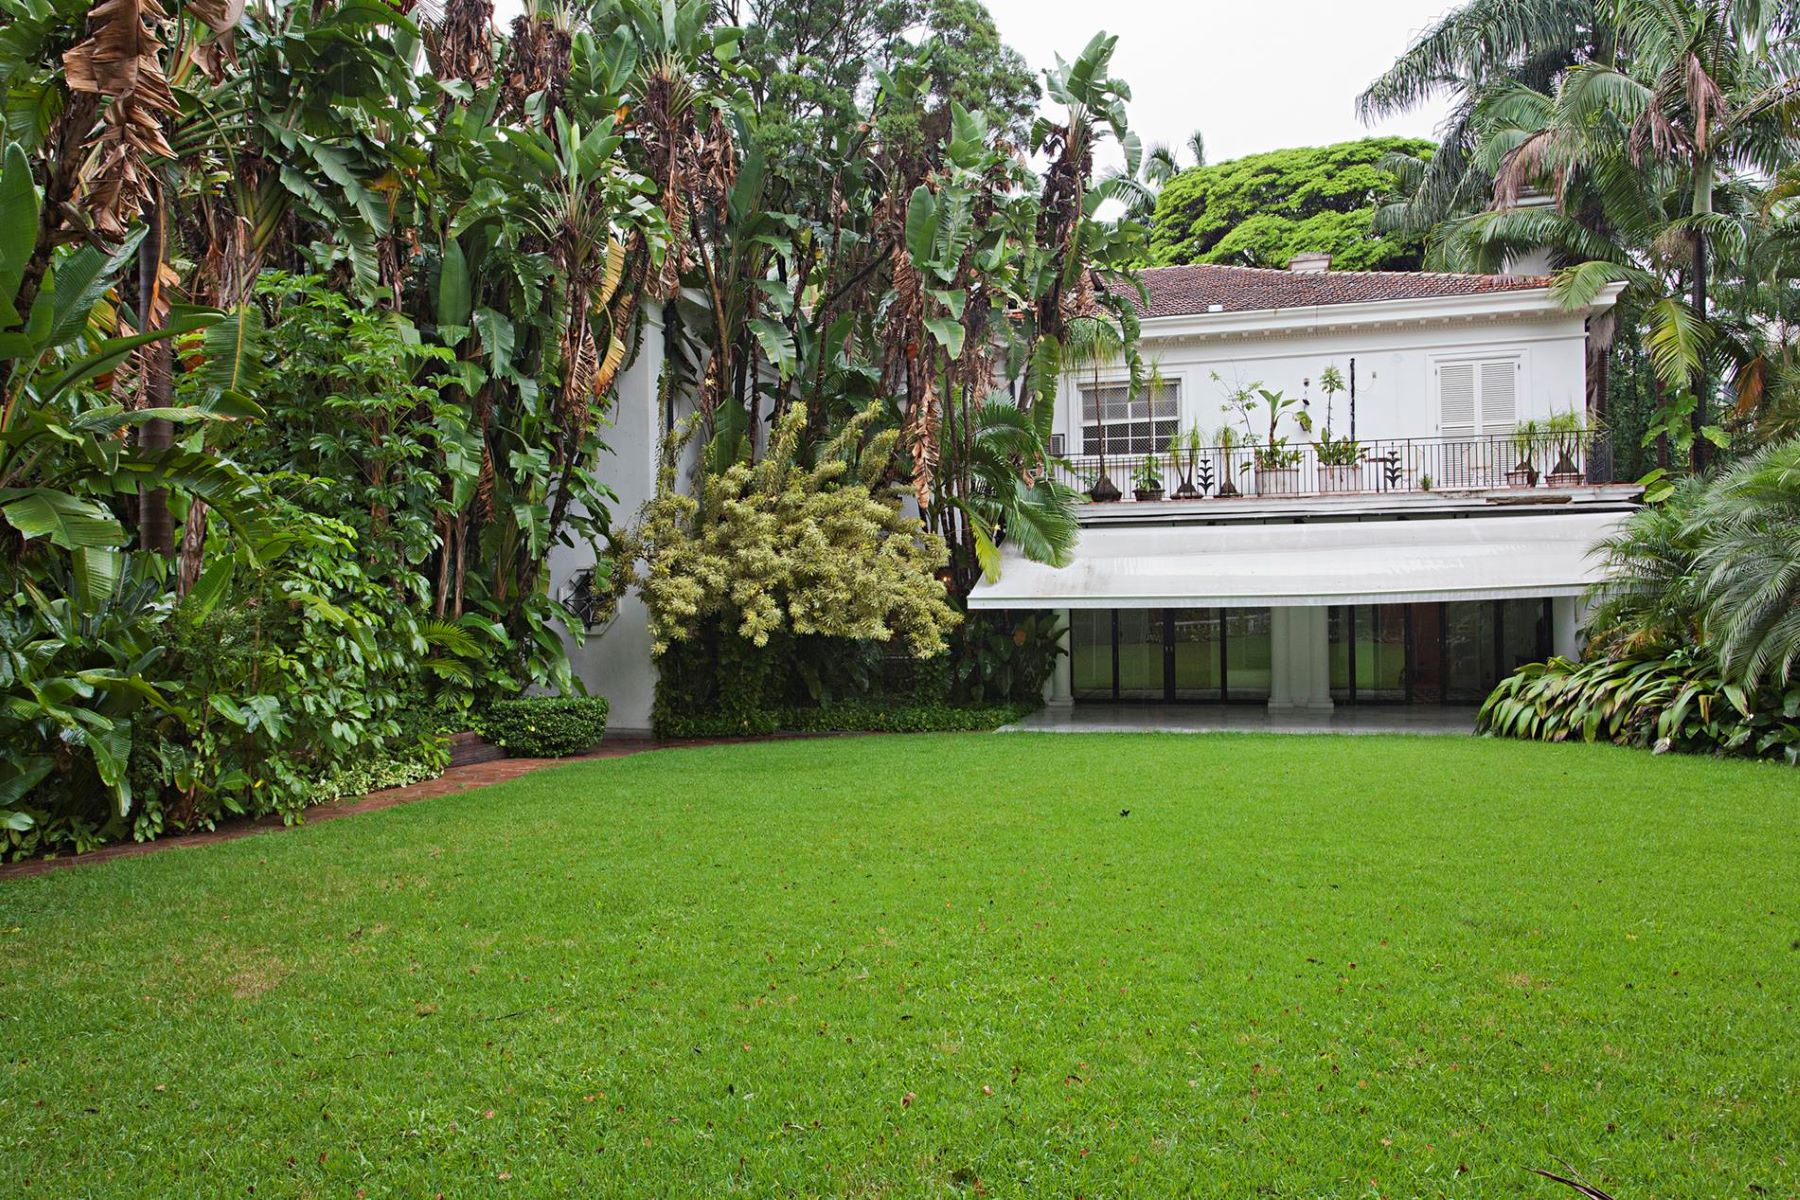 Single Family Home for Sale at Classic mansion Sao Paulo, Sao Paulo, 01448-020 Brazil